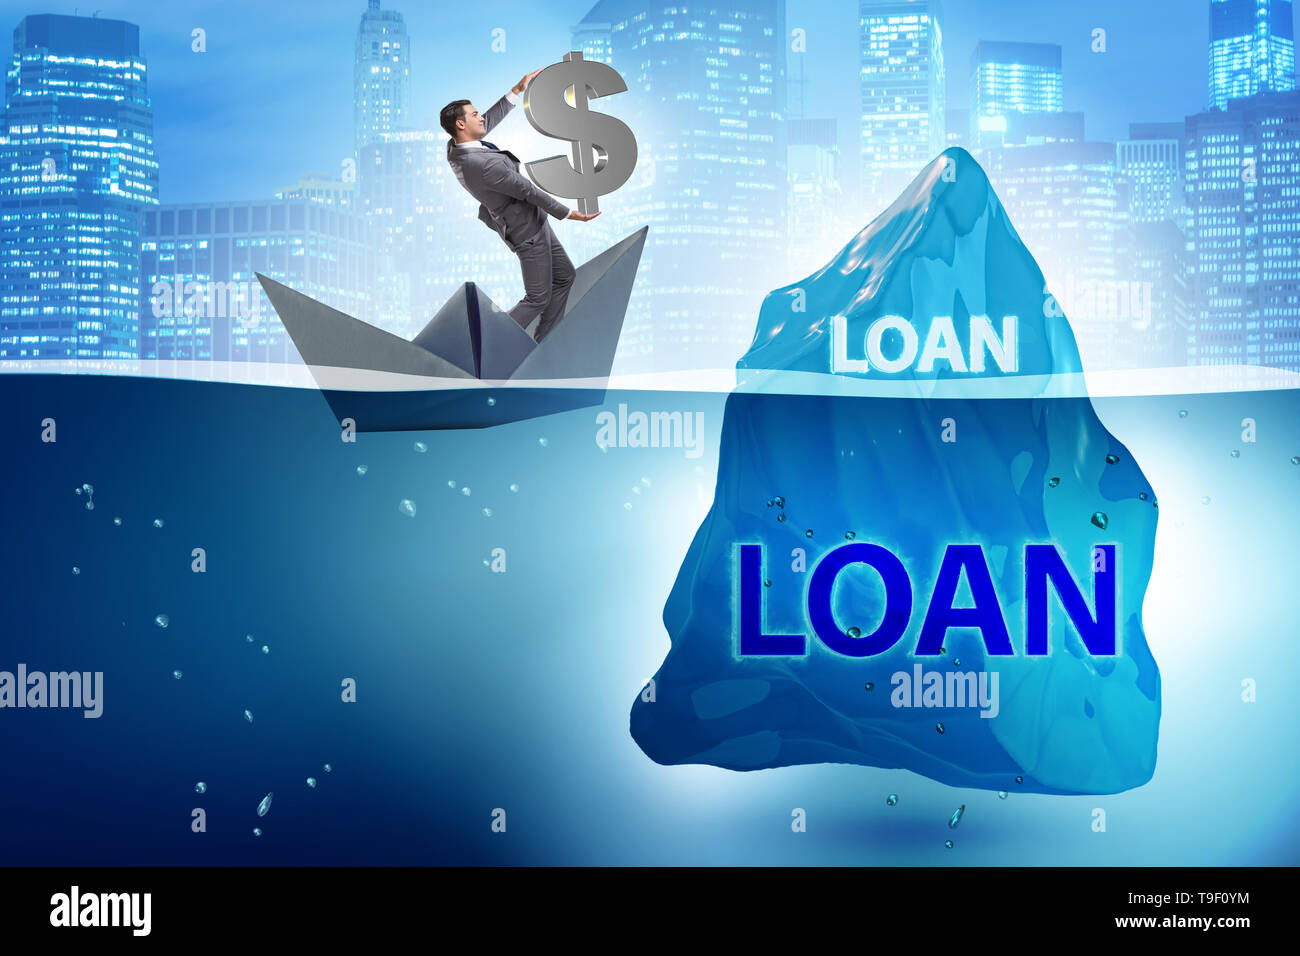 Debt and loan concept with hidden iceberg - Stock Image